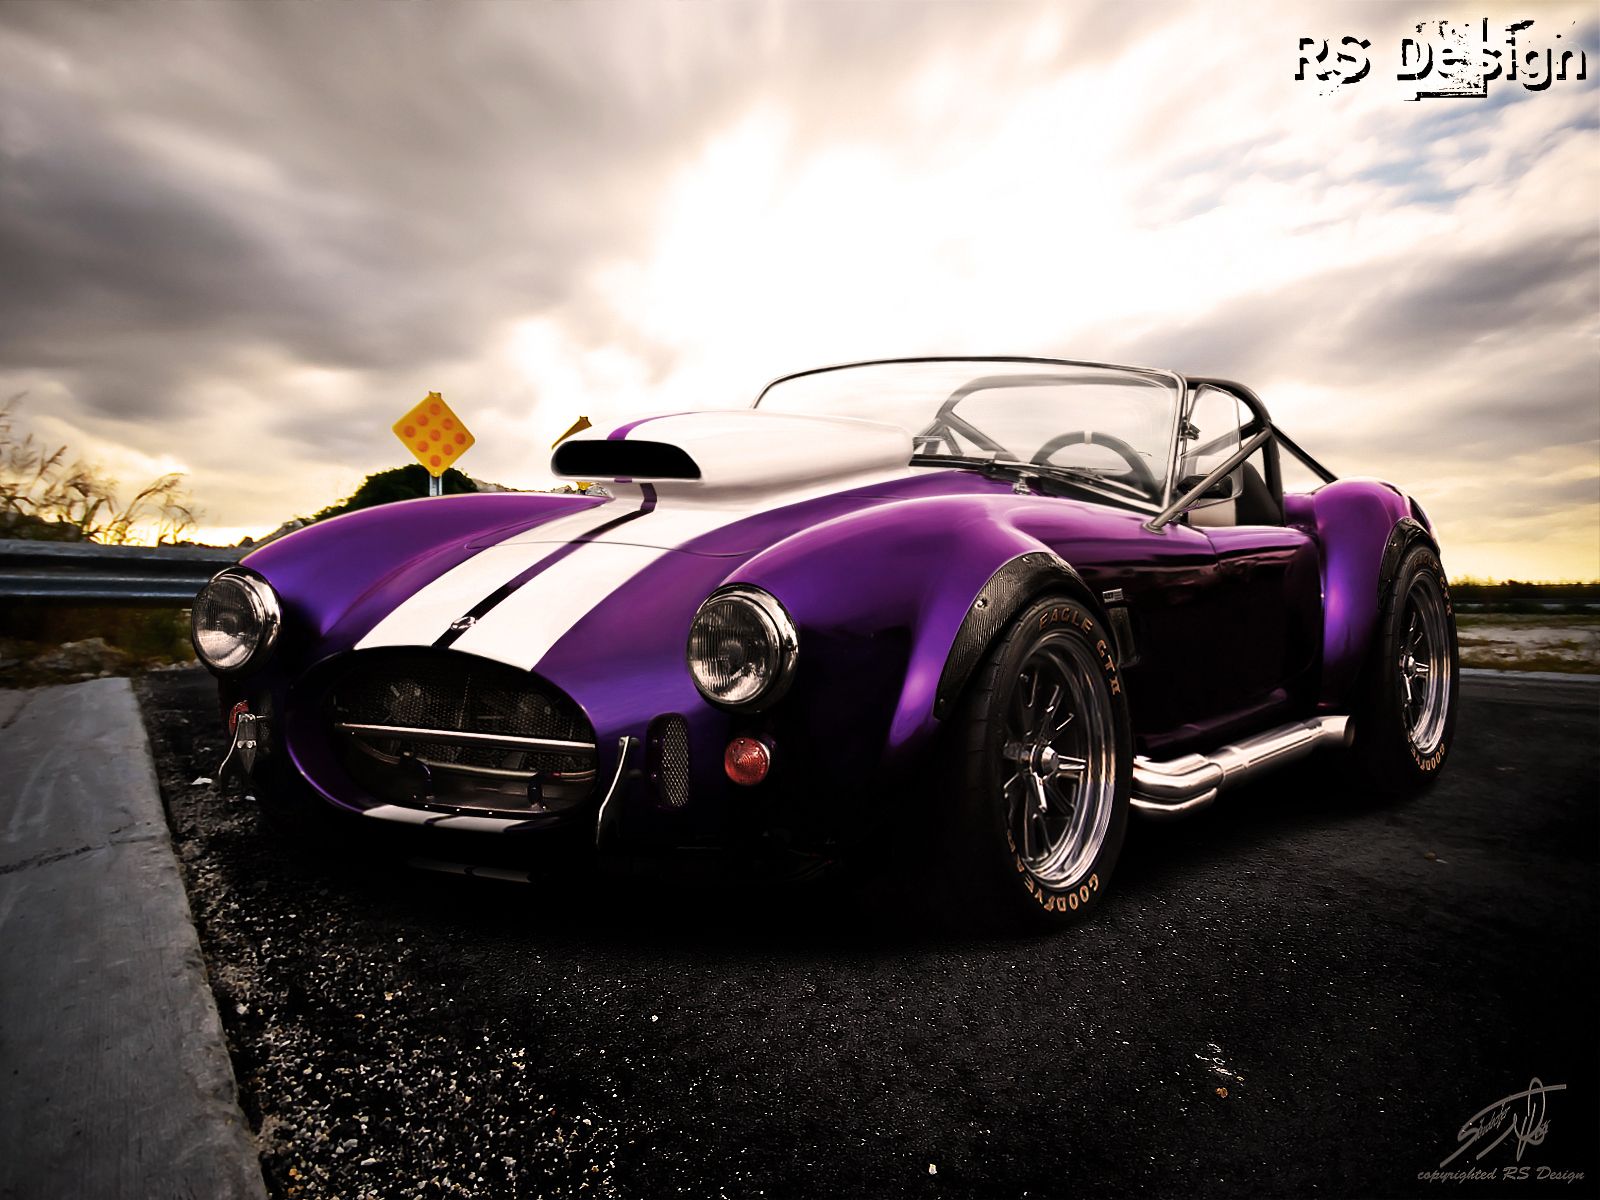 http://www.autemo.com/dc/users/1/262PQ/68/chops/AC_Cobra_Deep_Purple_by_RSDesign.jpg